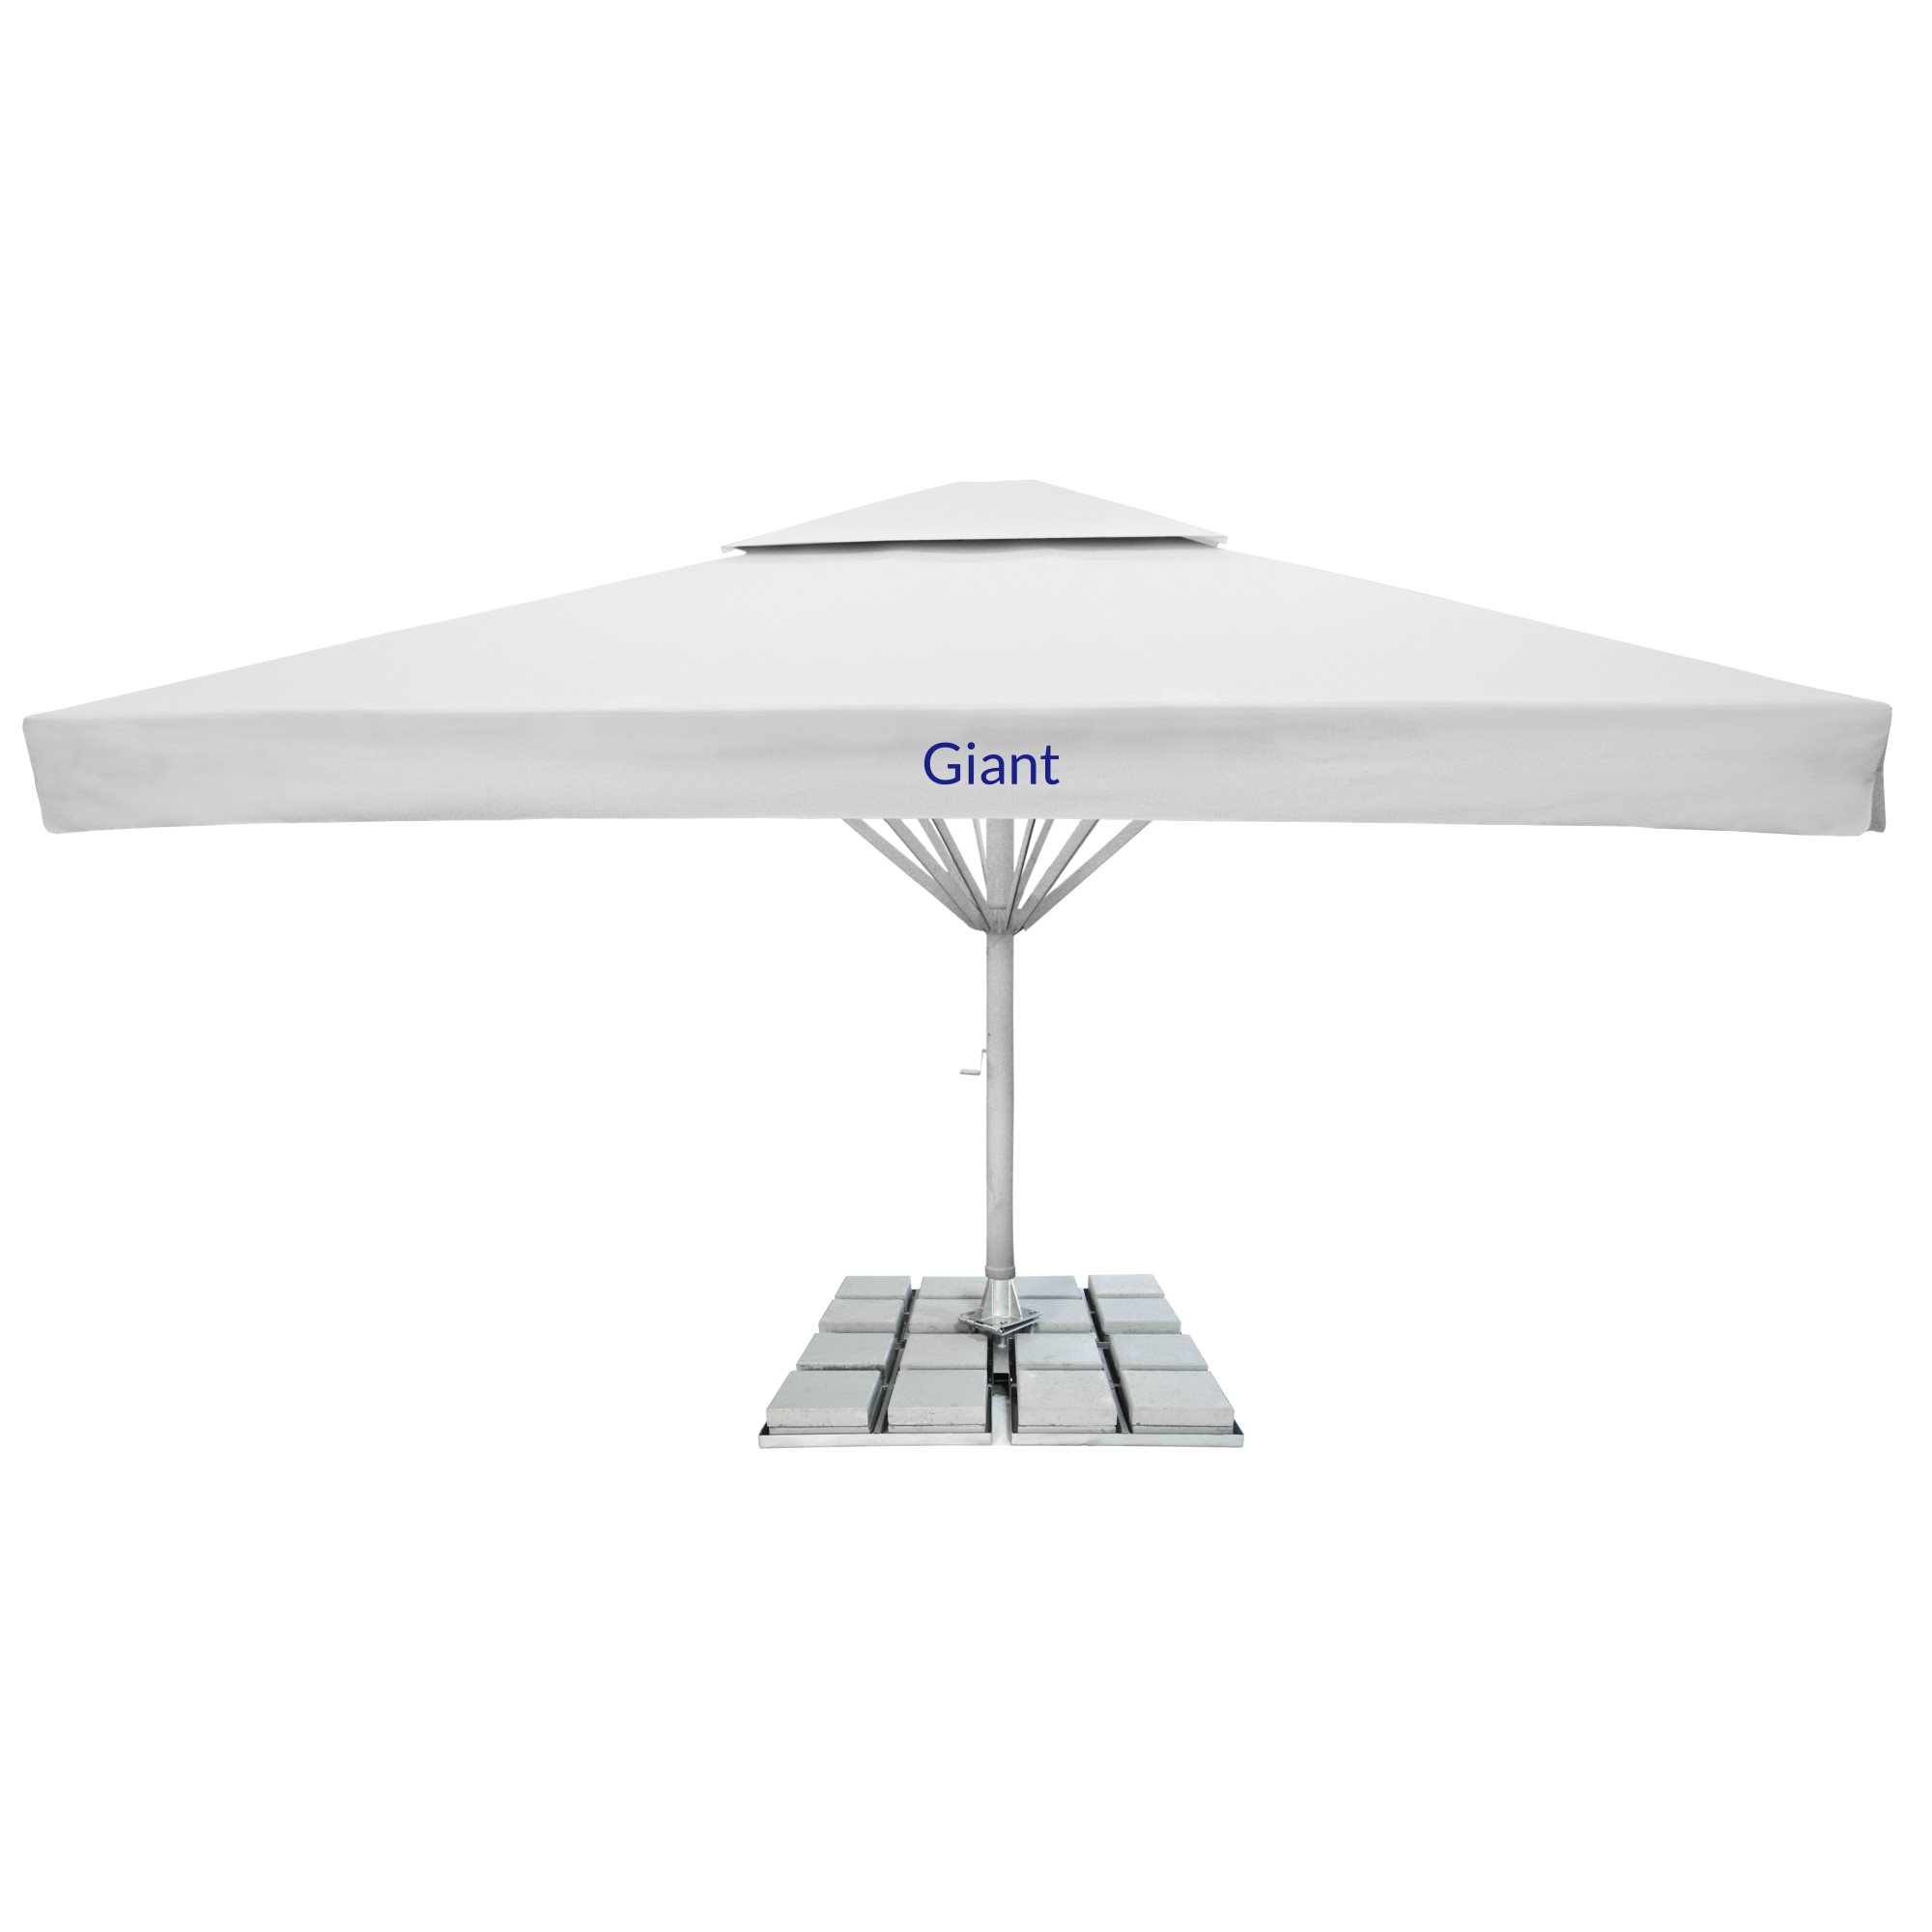 4. Giant Parasol Square 6m - with fairing and 2nd roof